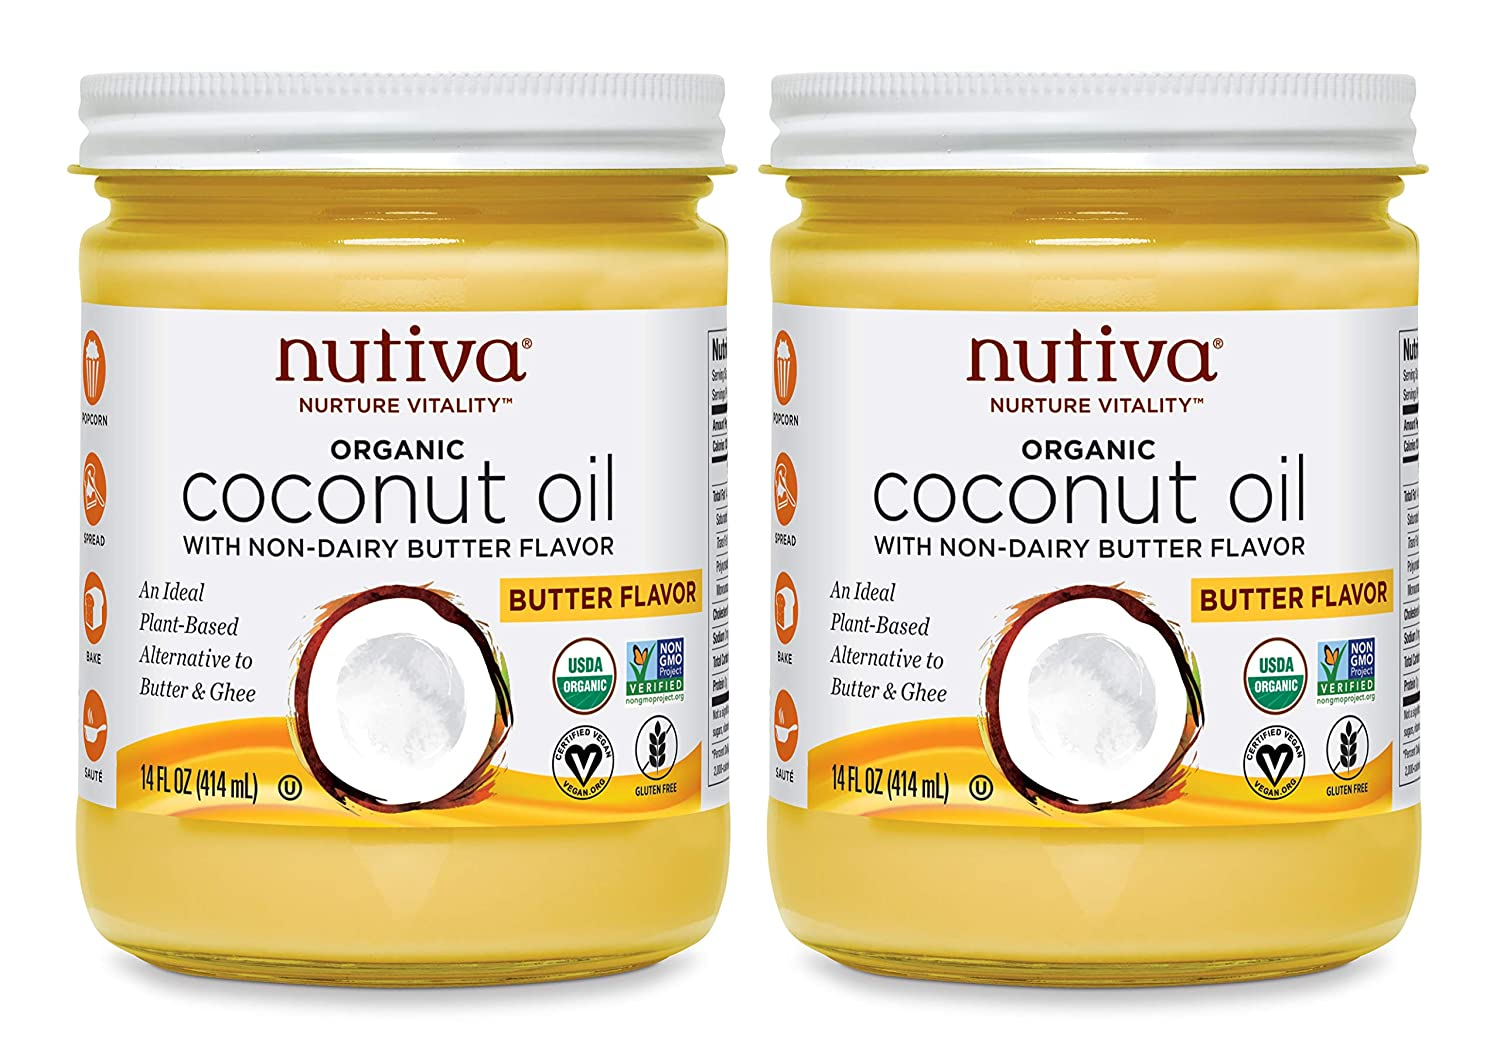 Nutiva Organic Coconut Oil with Non-Dairy Butter Flavor, 14 Ounce (Pack of 2) | USDA Organic, Non-GMO | Vegan & Gluten-Free | Plant-Based Superfood Replacement for Butter